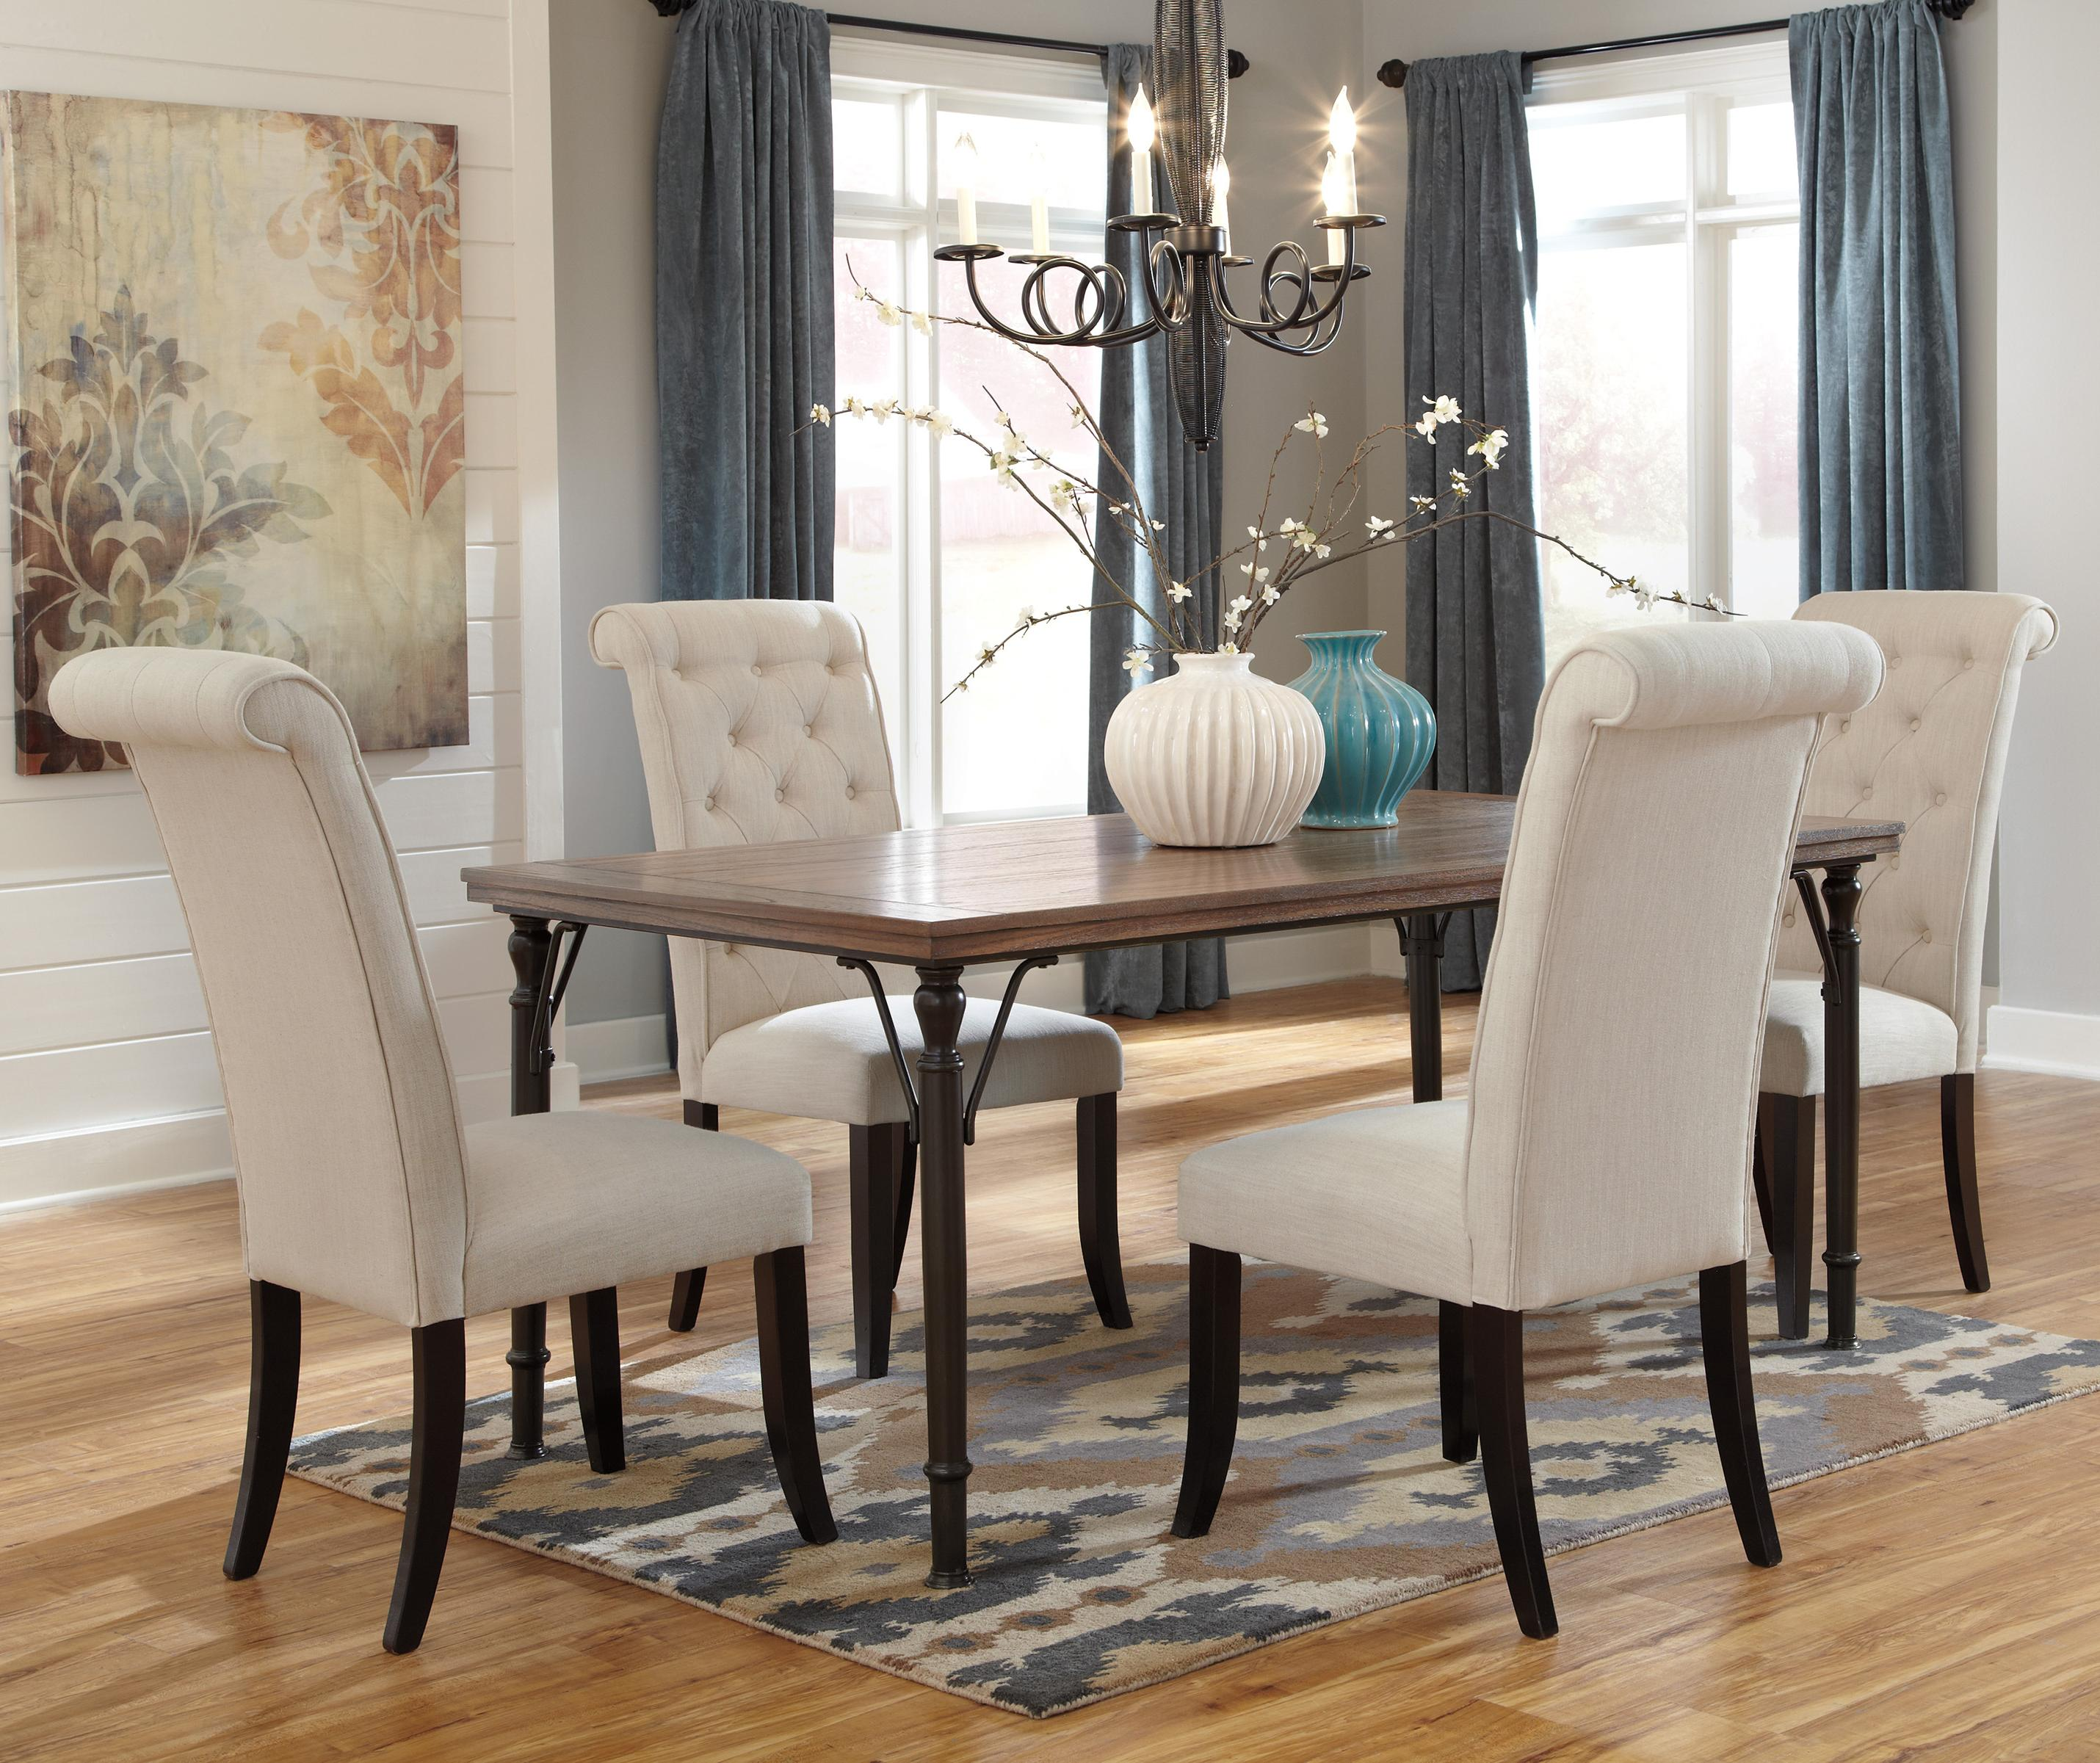 ashley dining room sets 5 Piece Rectangular Dining Room Table Set w/ Wood Top & Metal Legs  ashley dining room sets